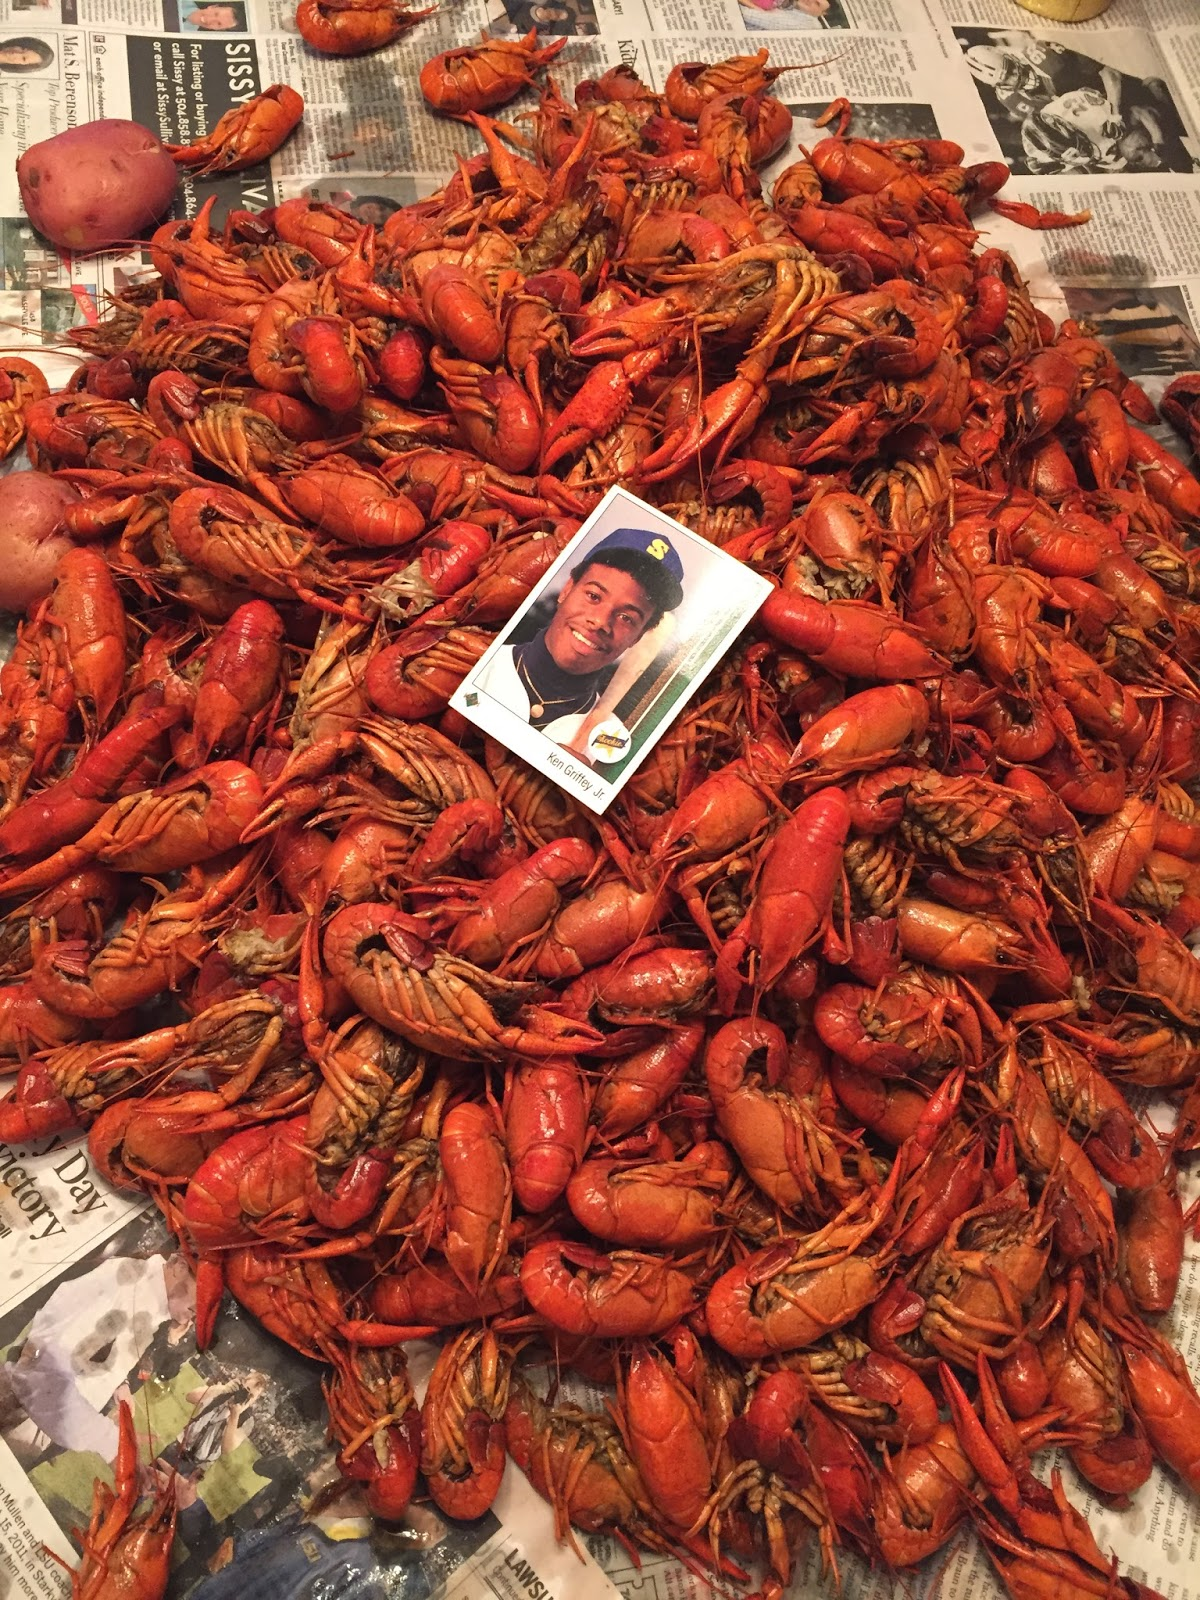 One Time In Texas I Had Crawfish So Spicy That Nobody At The Table Could Eat  Them Being The Only Person At The Table From New